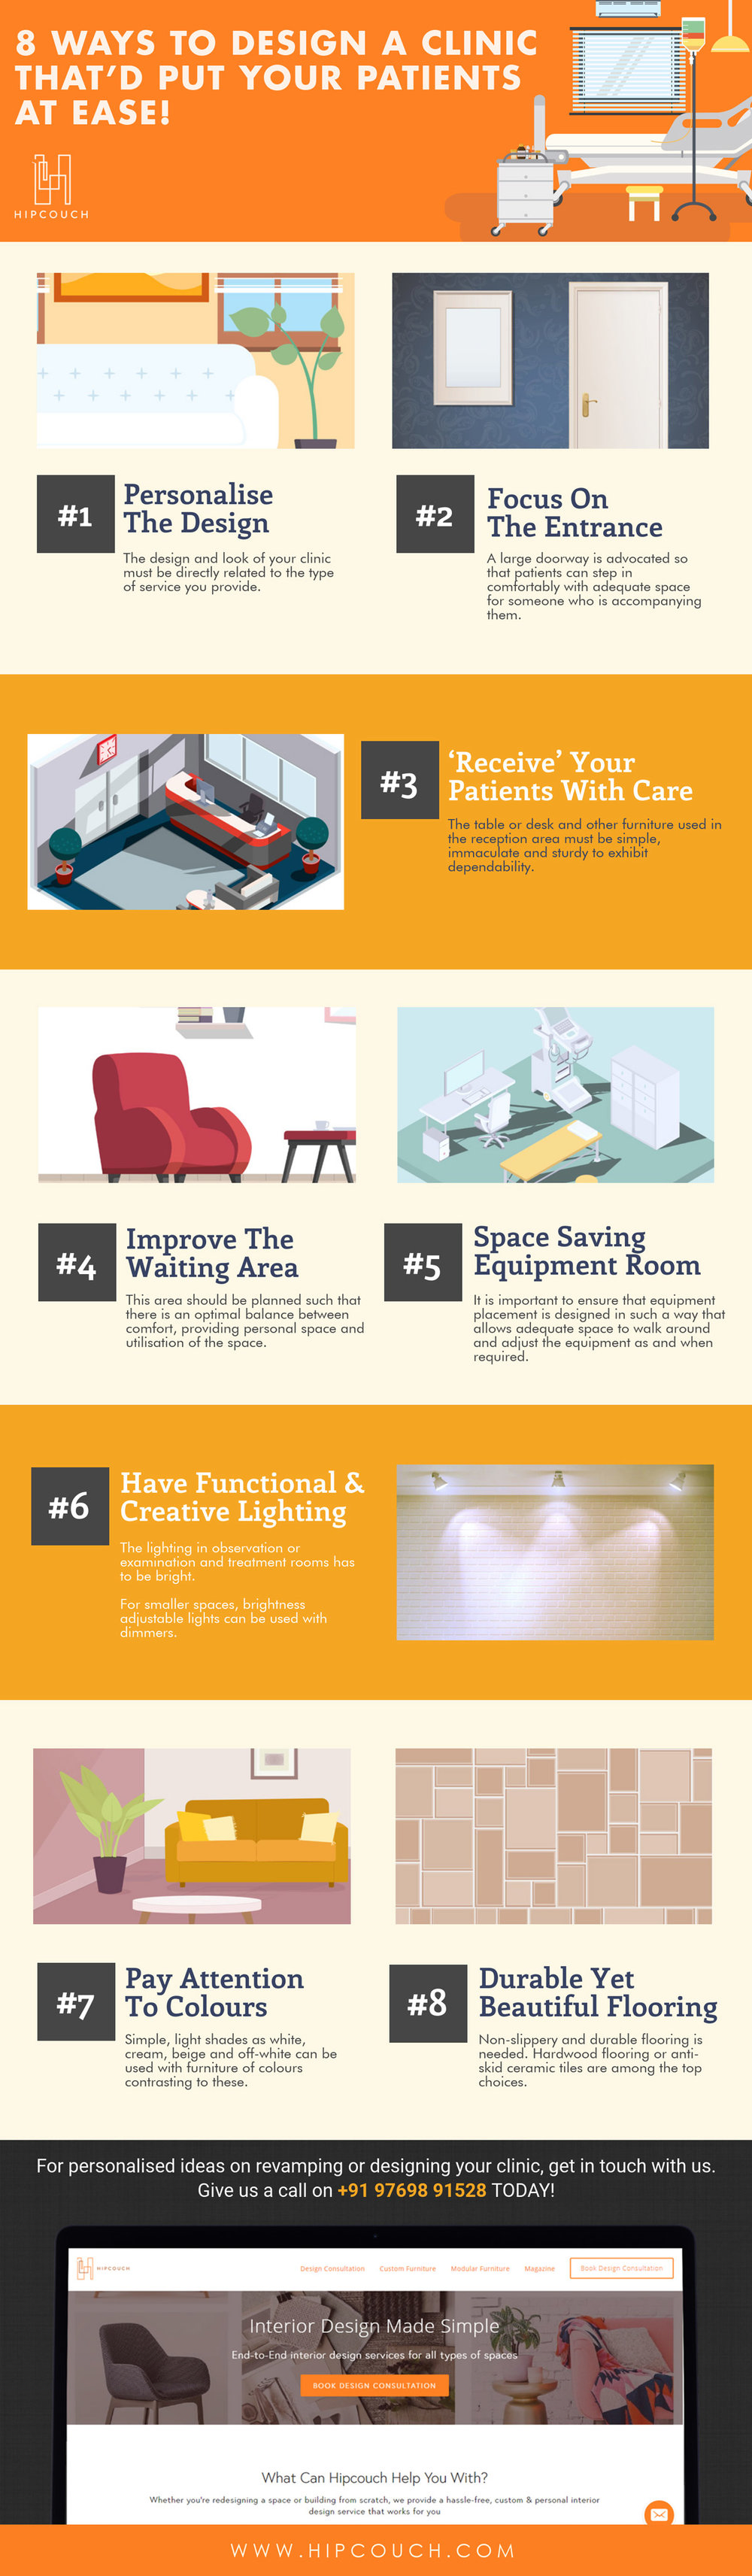 Tips-for-Clinic-Interior-Designs.jpg